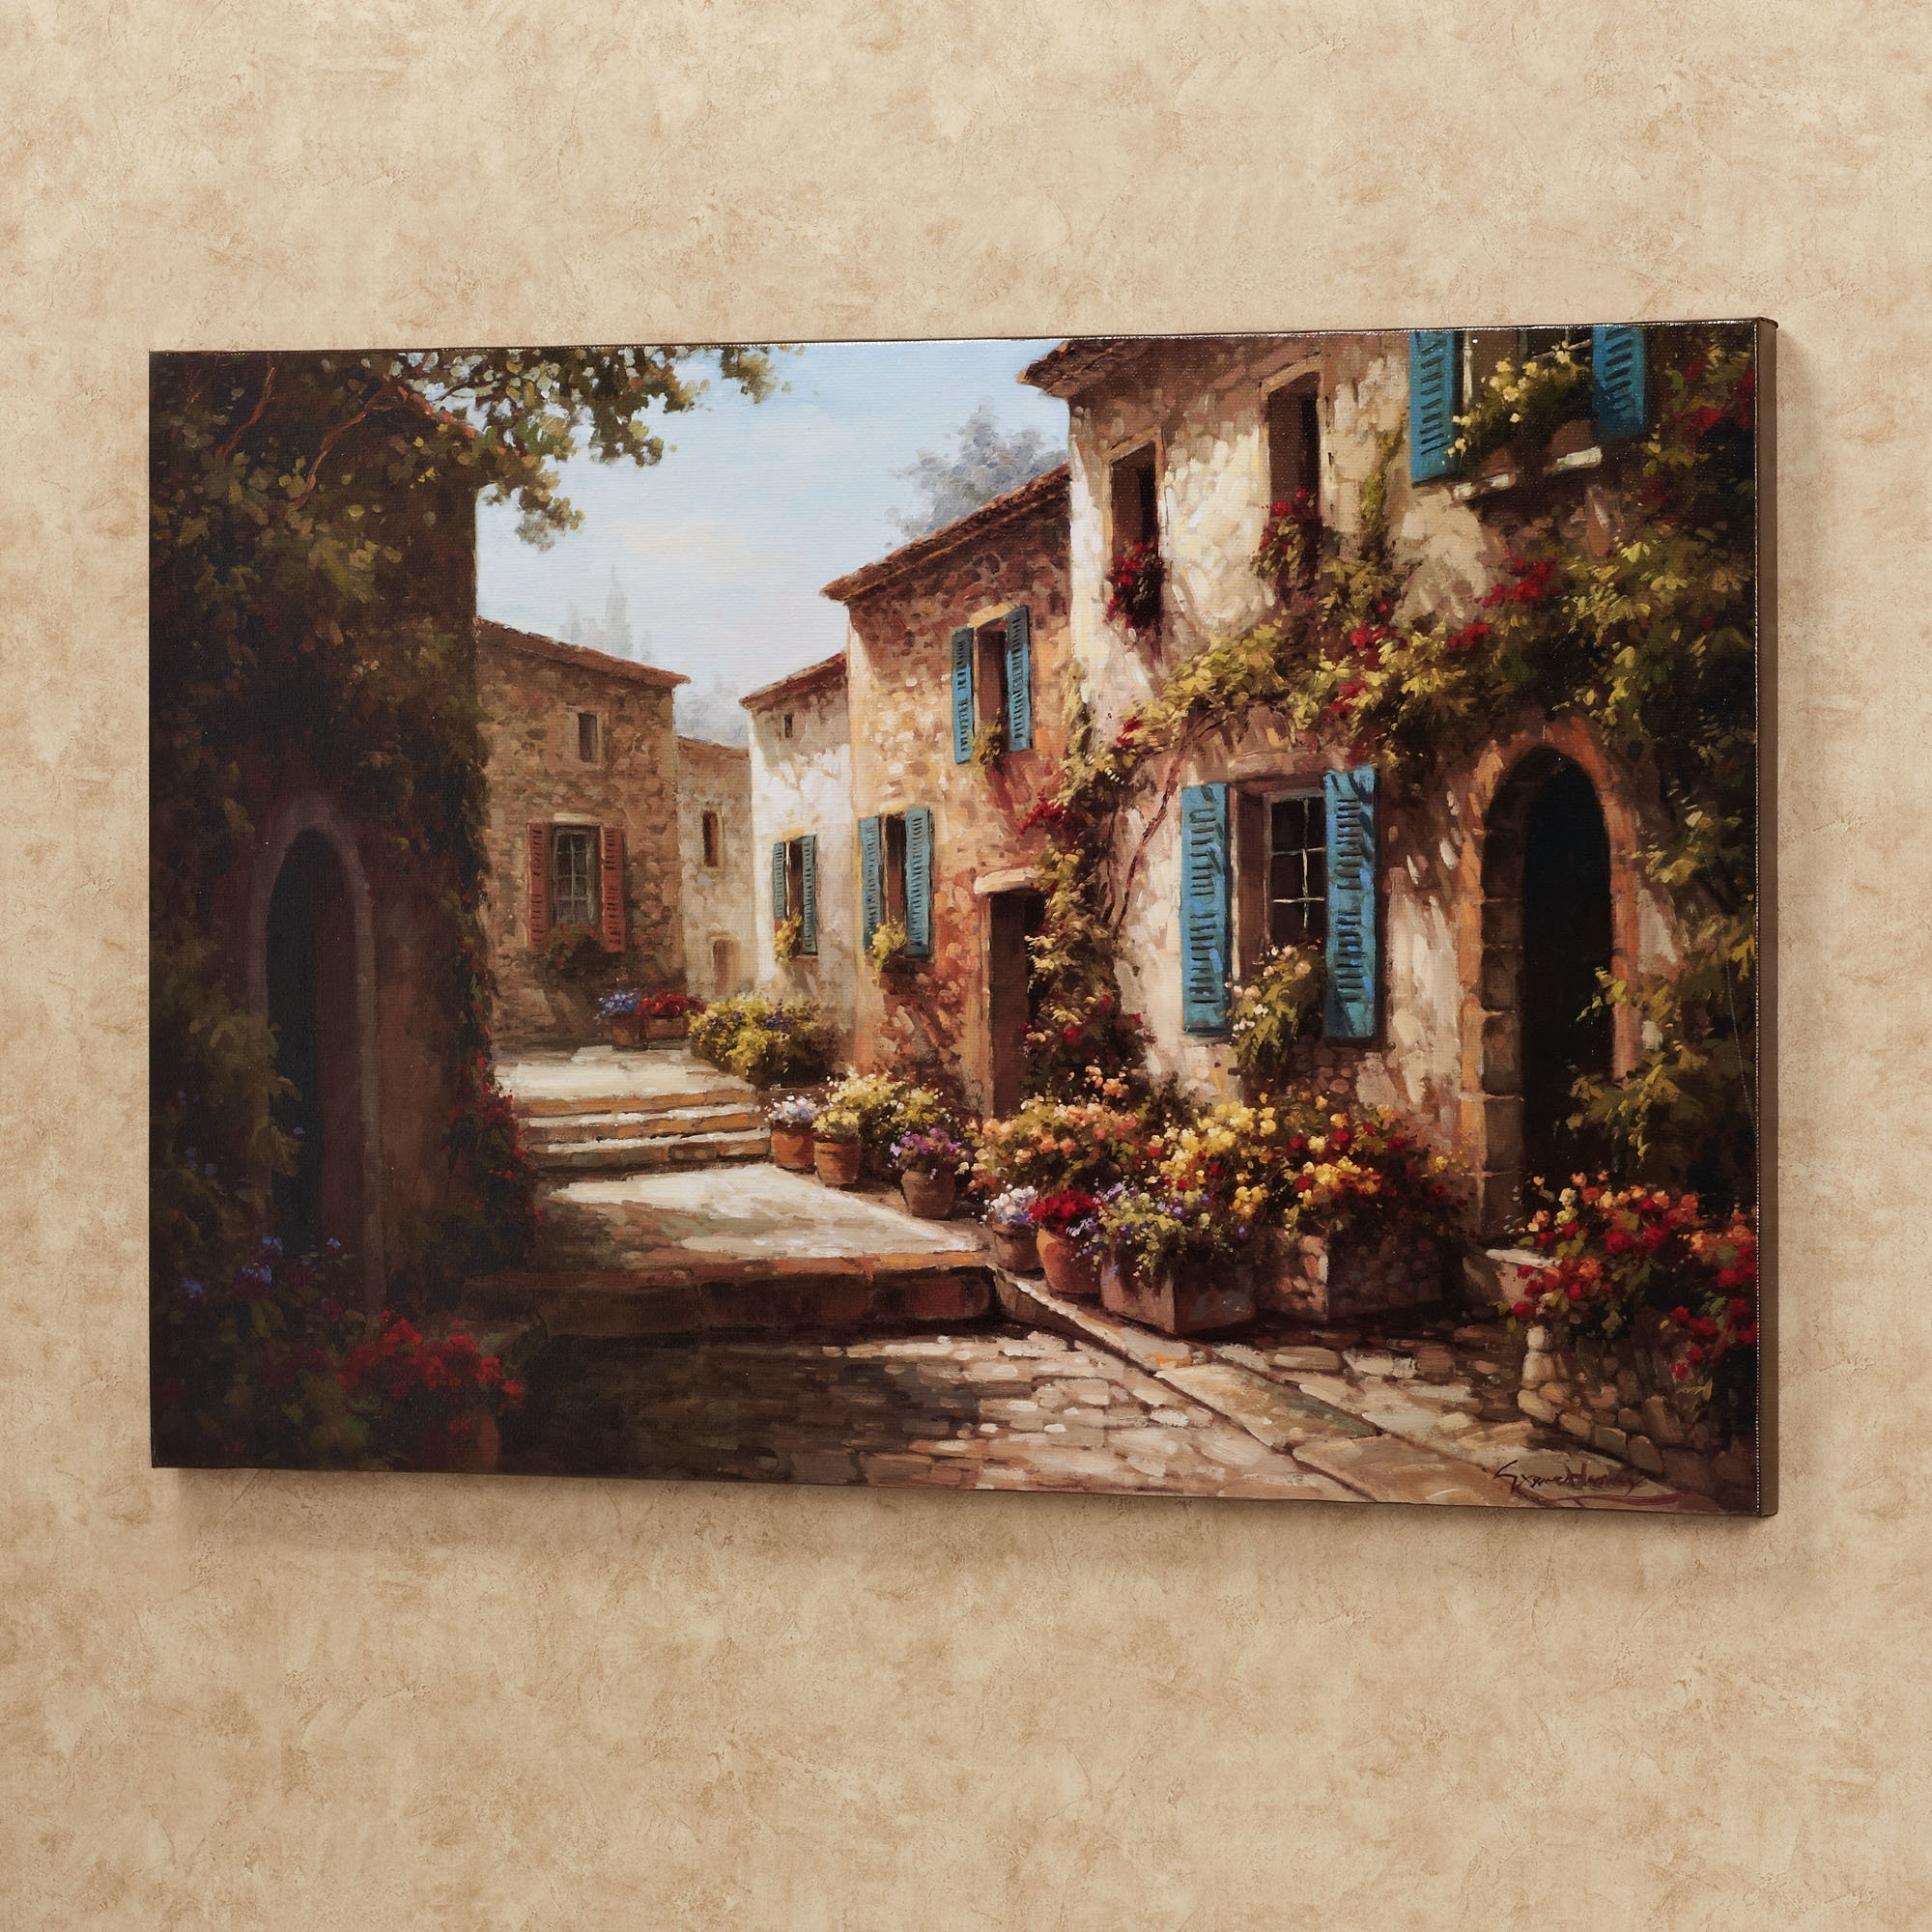 Walkway Of Flowers Villas Canvas Wall Art | Walkways, Canvases And With Regard To Recent Joval Canvas Wall Art (View 6 of 15)